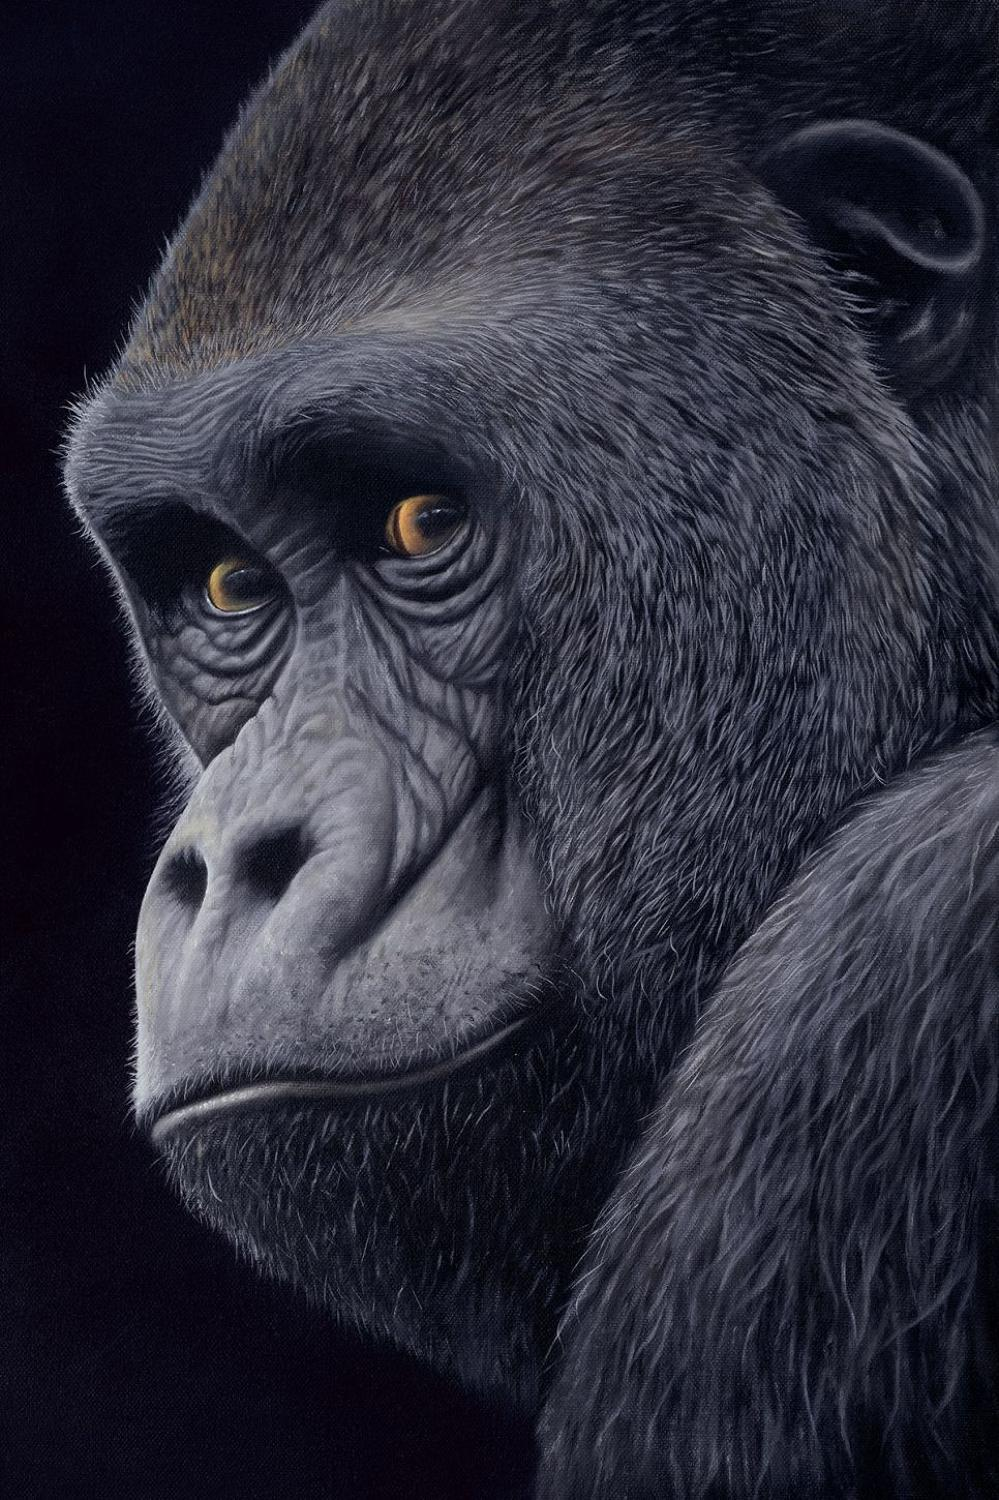 You Talking To Me? Framed Art Print by Jonathan Truss